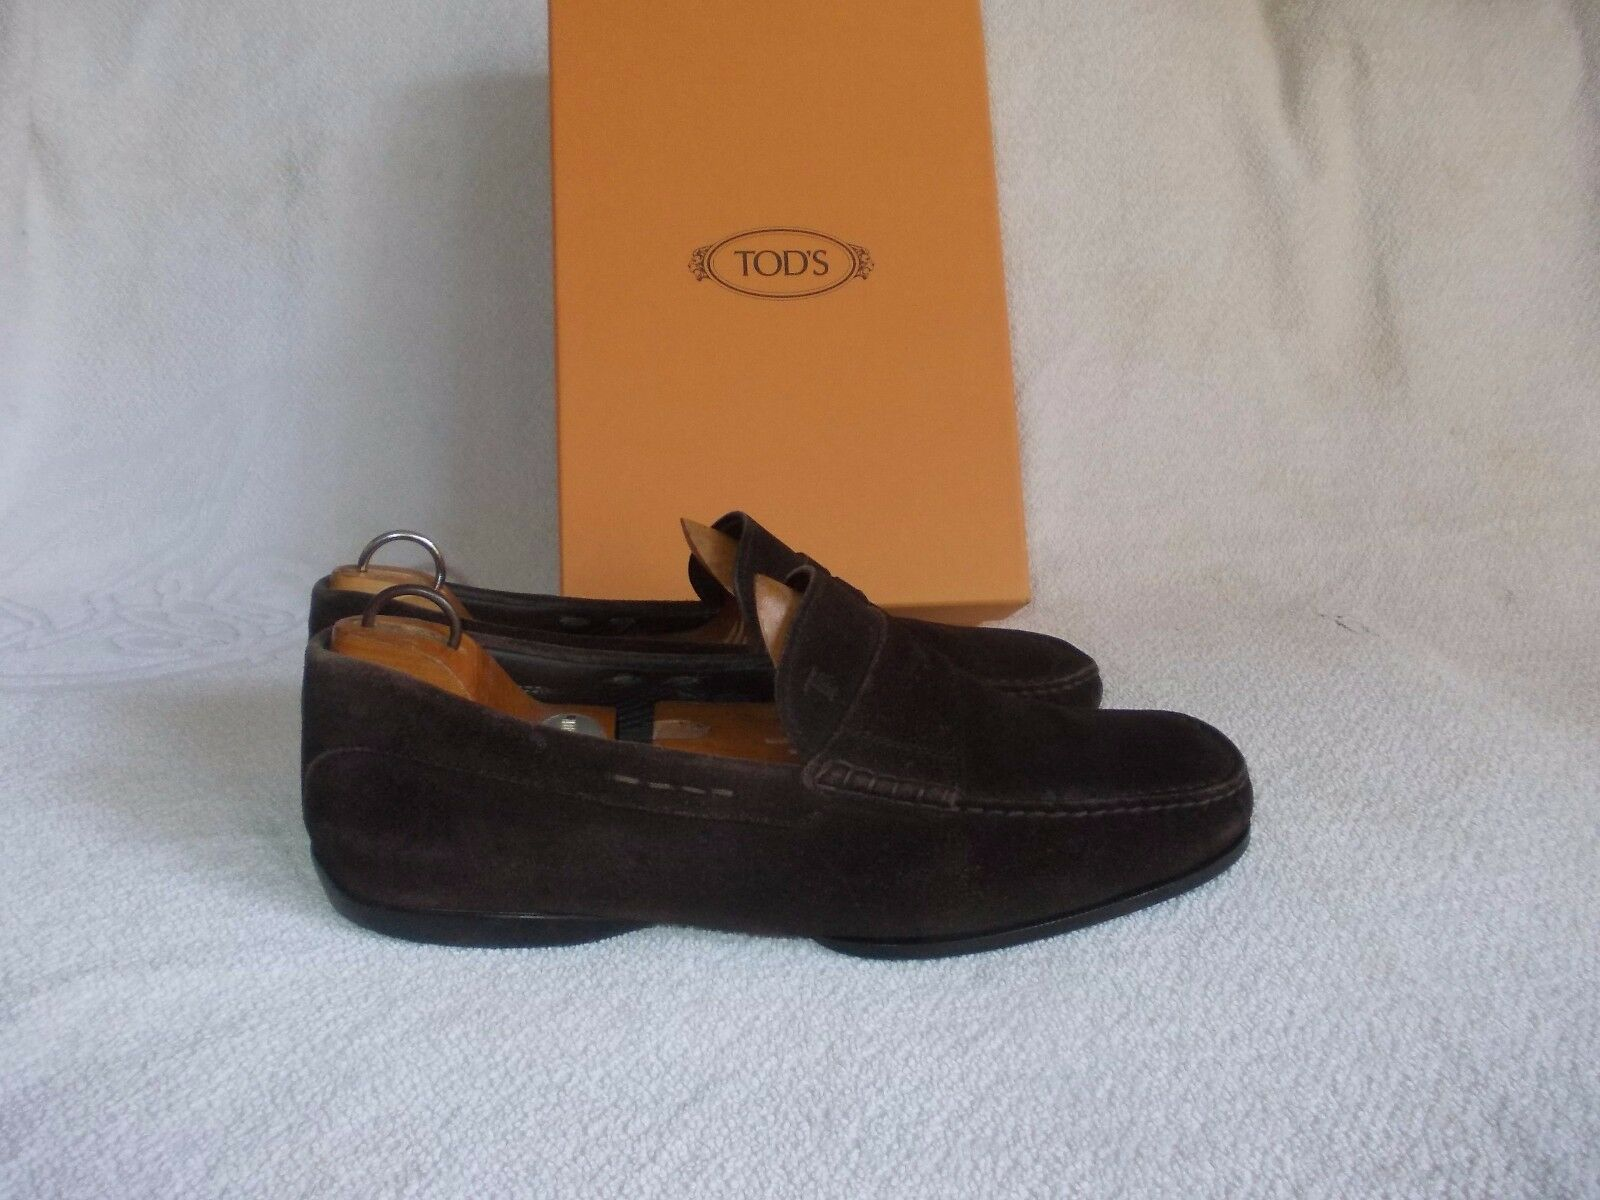 shoes  mocassins  loafers TOD'S(= POINTURE 7.5= 41.5)